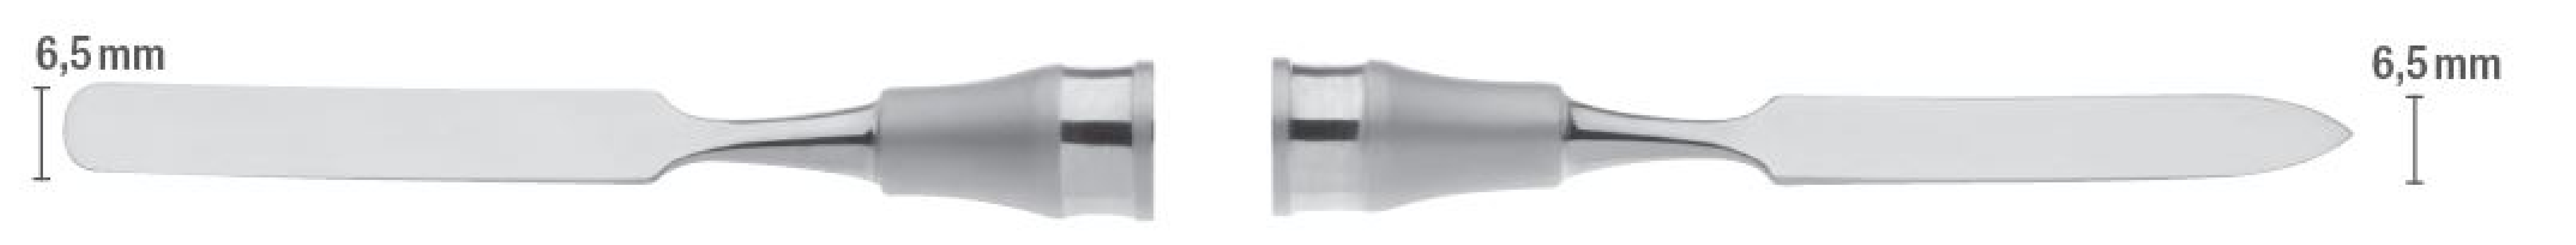 An image of Cement Spatula 6.5 mm